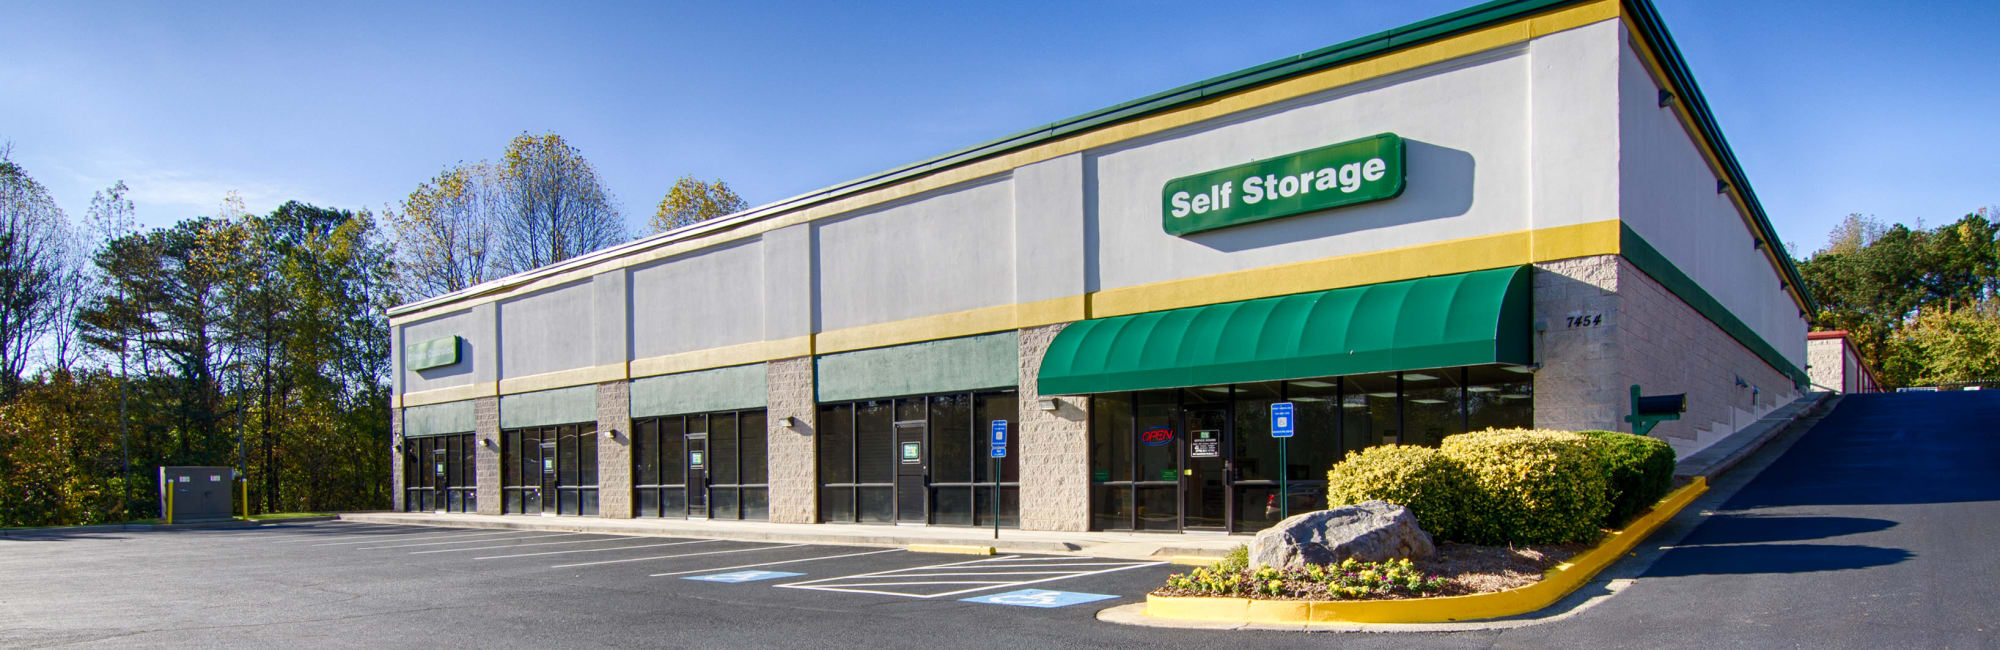 Metro Self Storage In Douglasville, GA